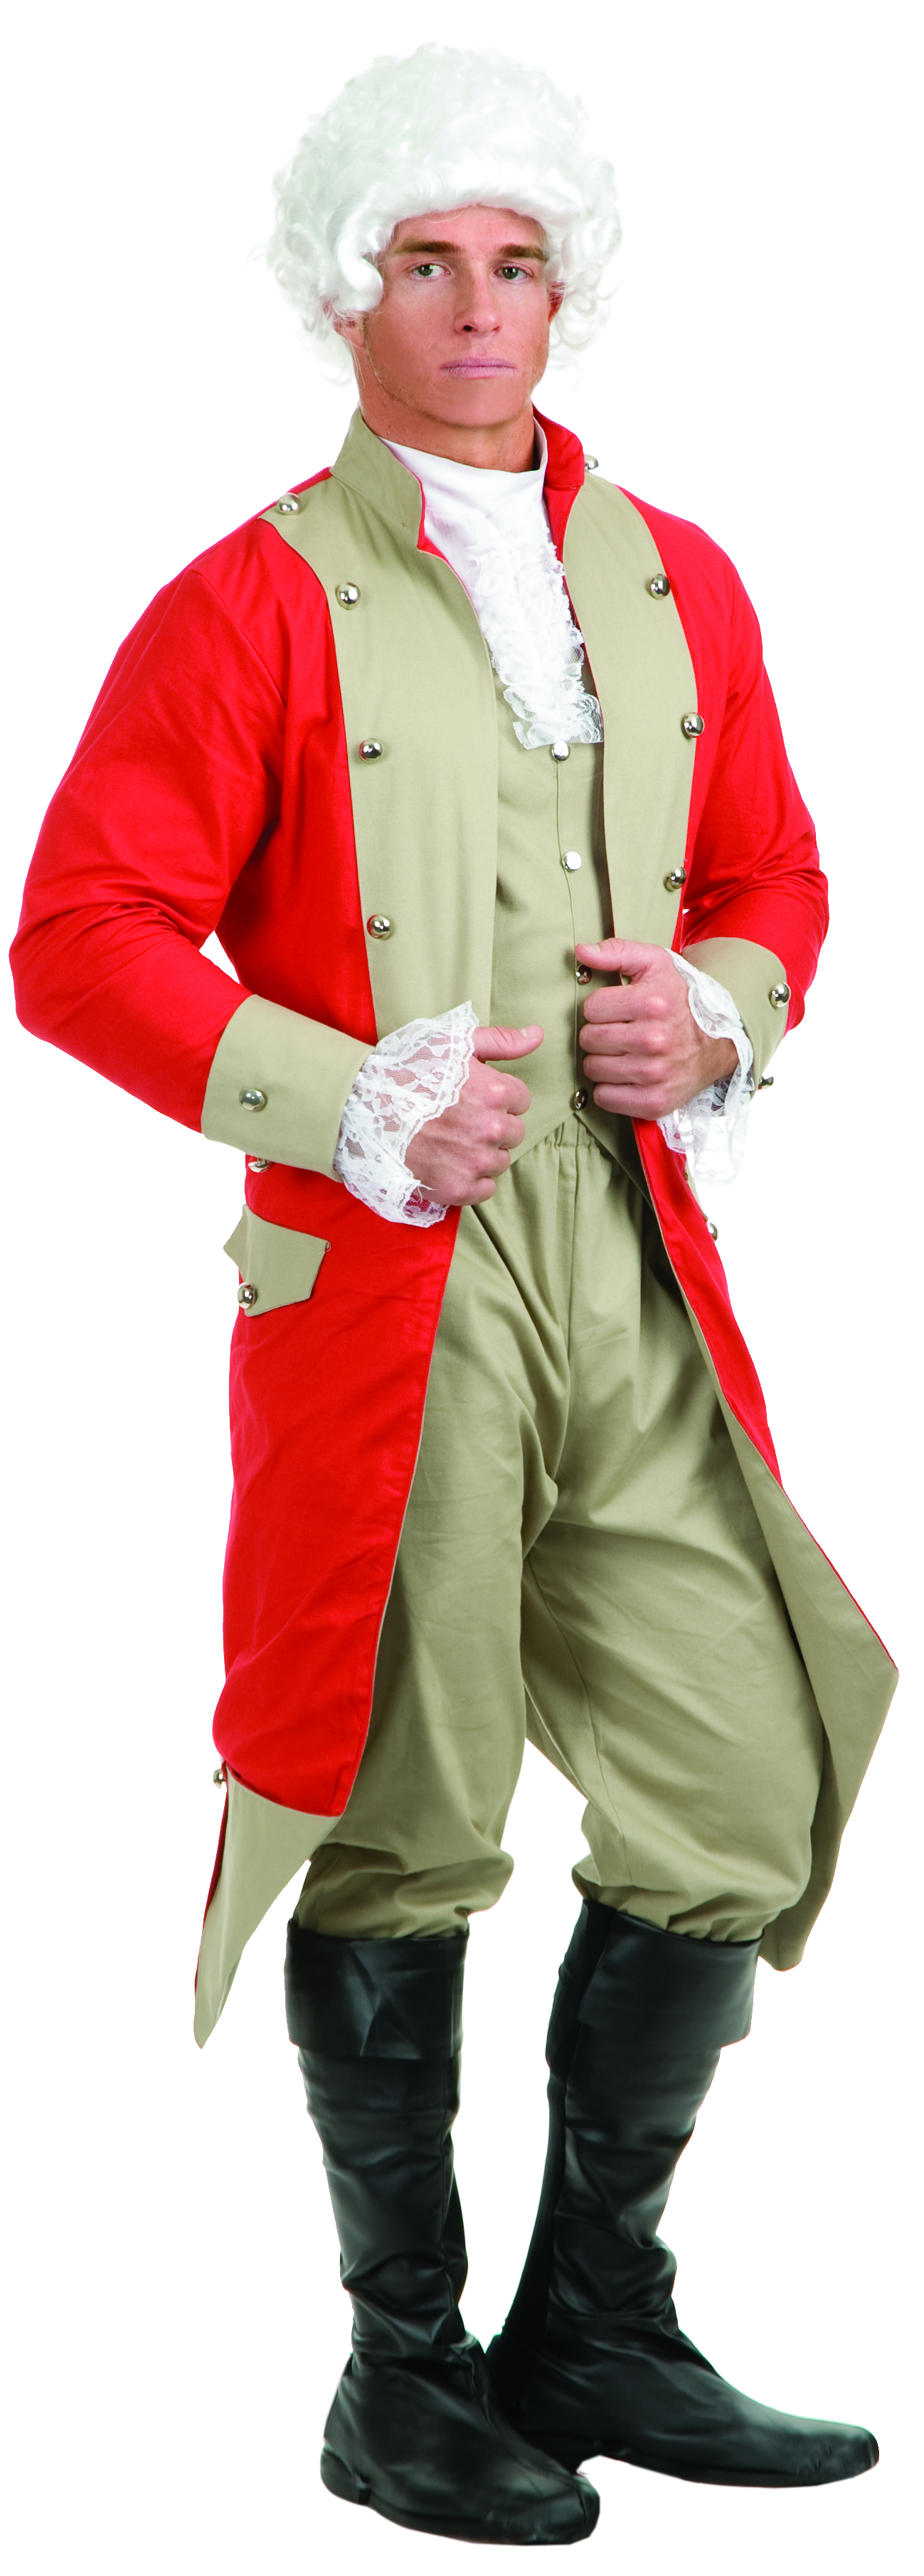 18th Cent 1700's Costumes - British -Redcoat - American Costumes Las Vegas